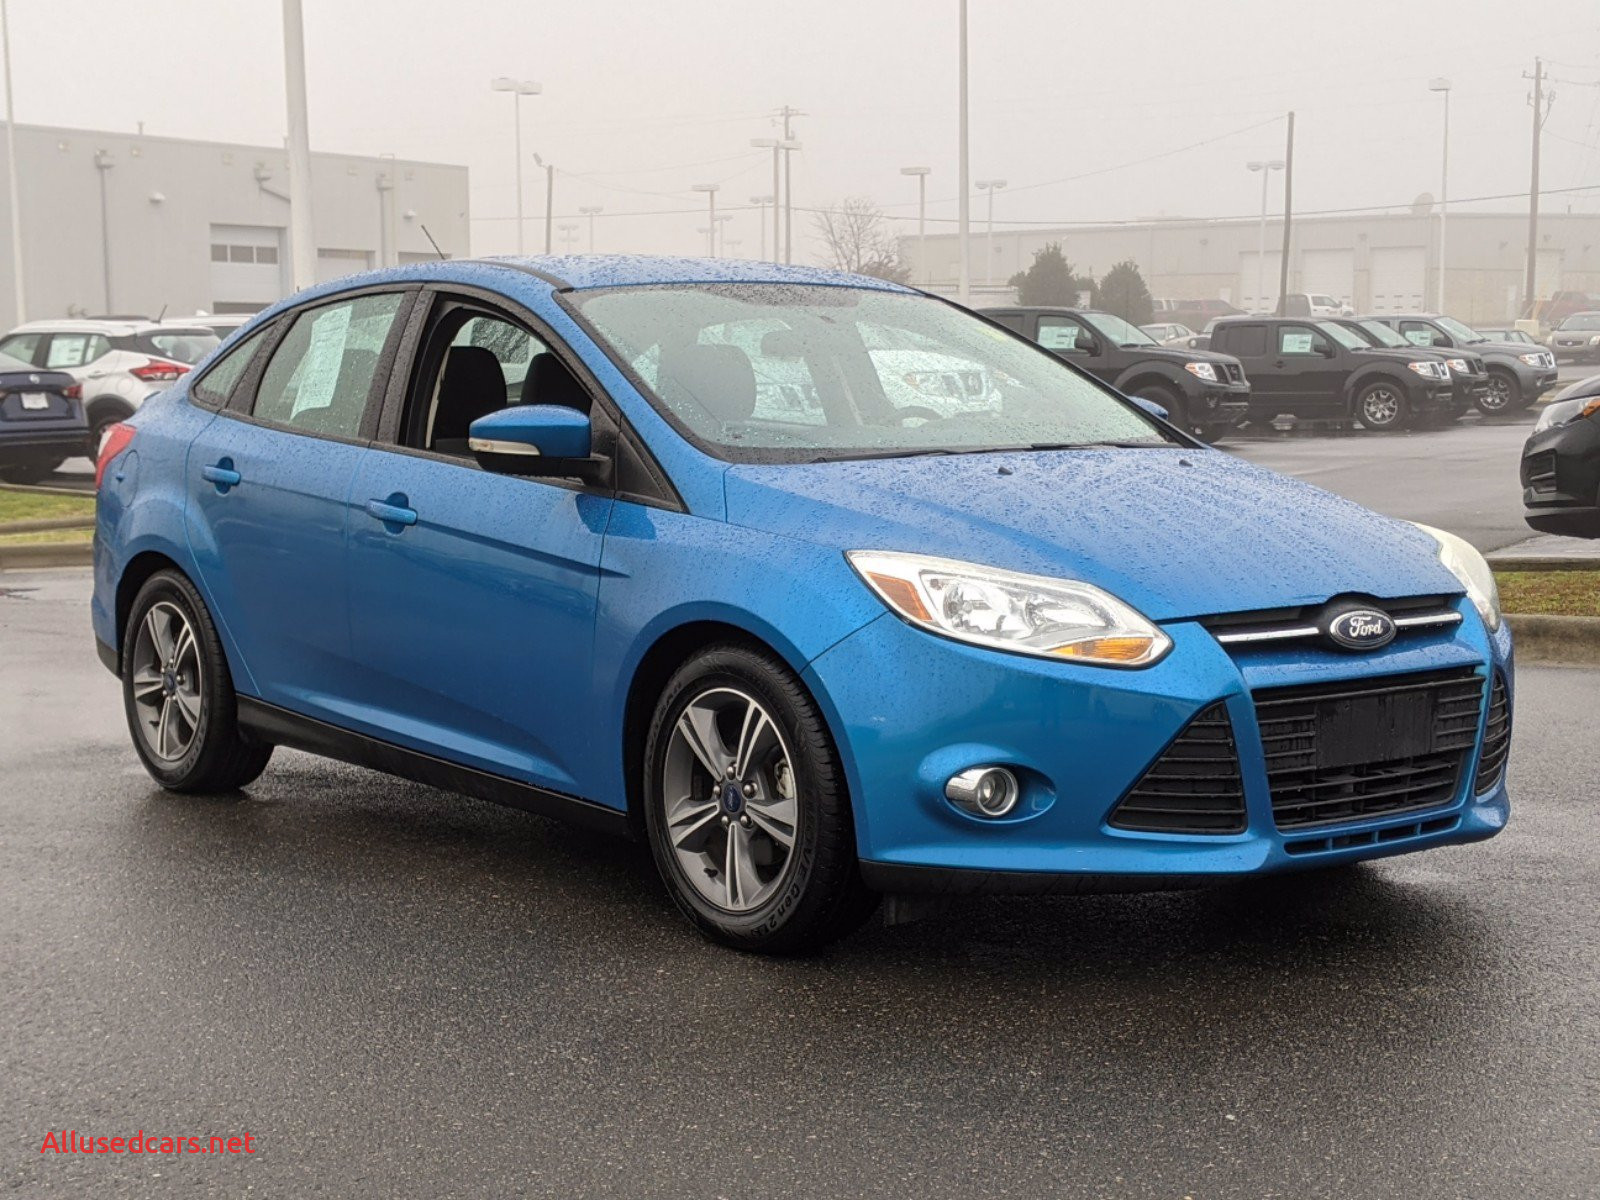 Used Cars for Sale $8000 or Less Inspirational Used Cars Under $10 000 Near Pinehurst